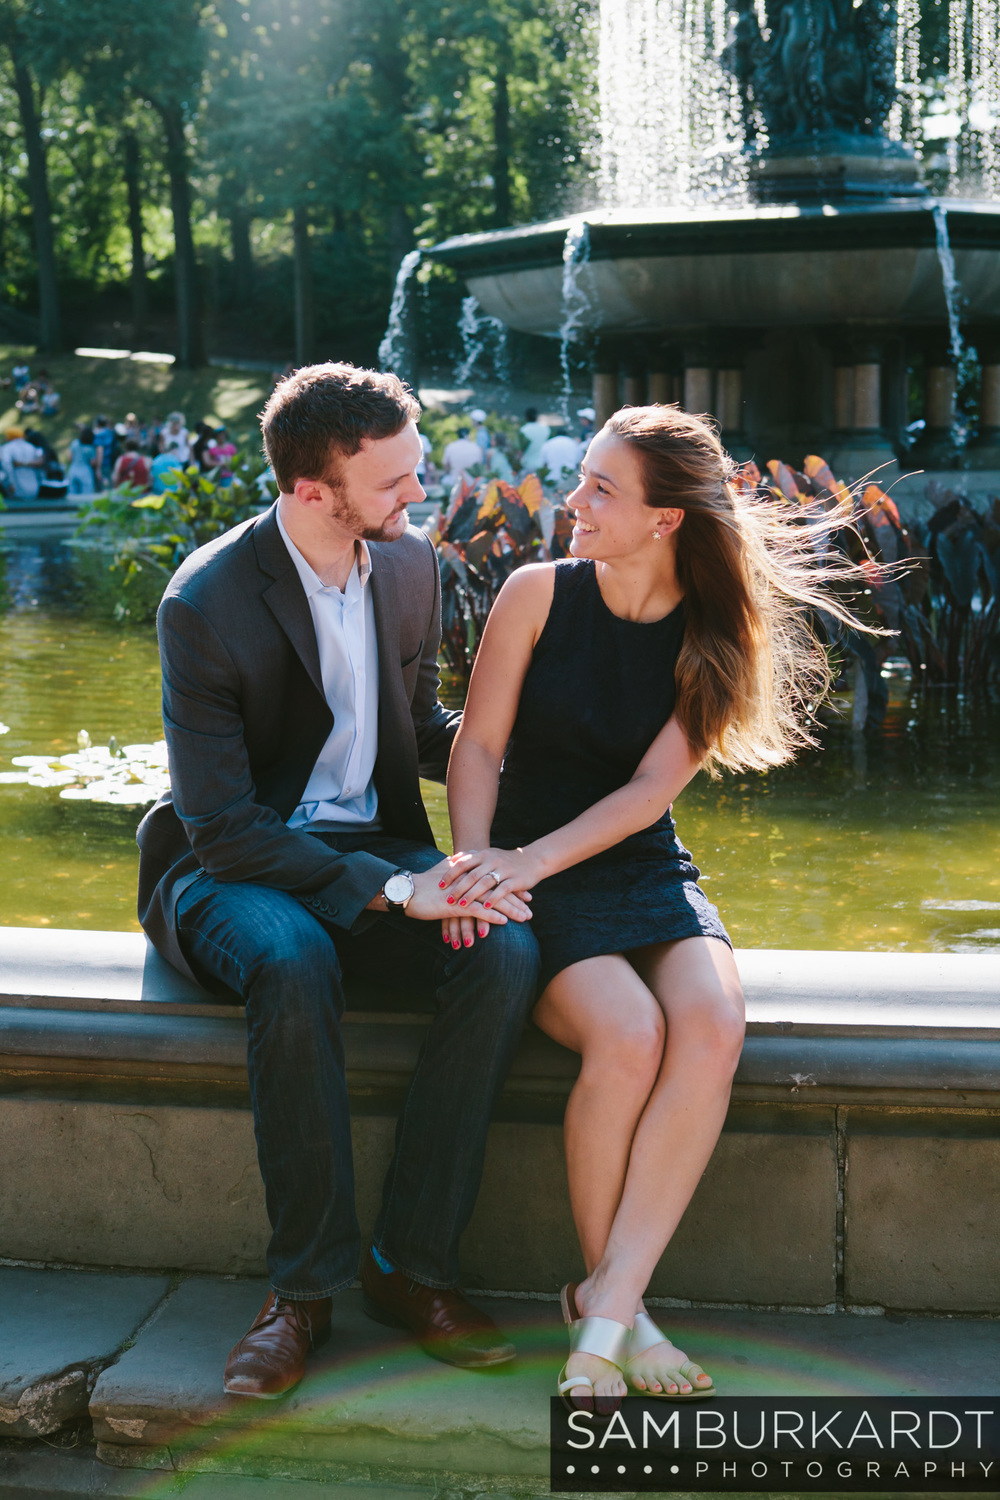 sburkardt_new_york_proposal_engagement_central_park_018.jpg